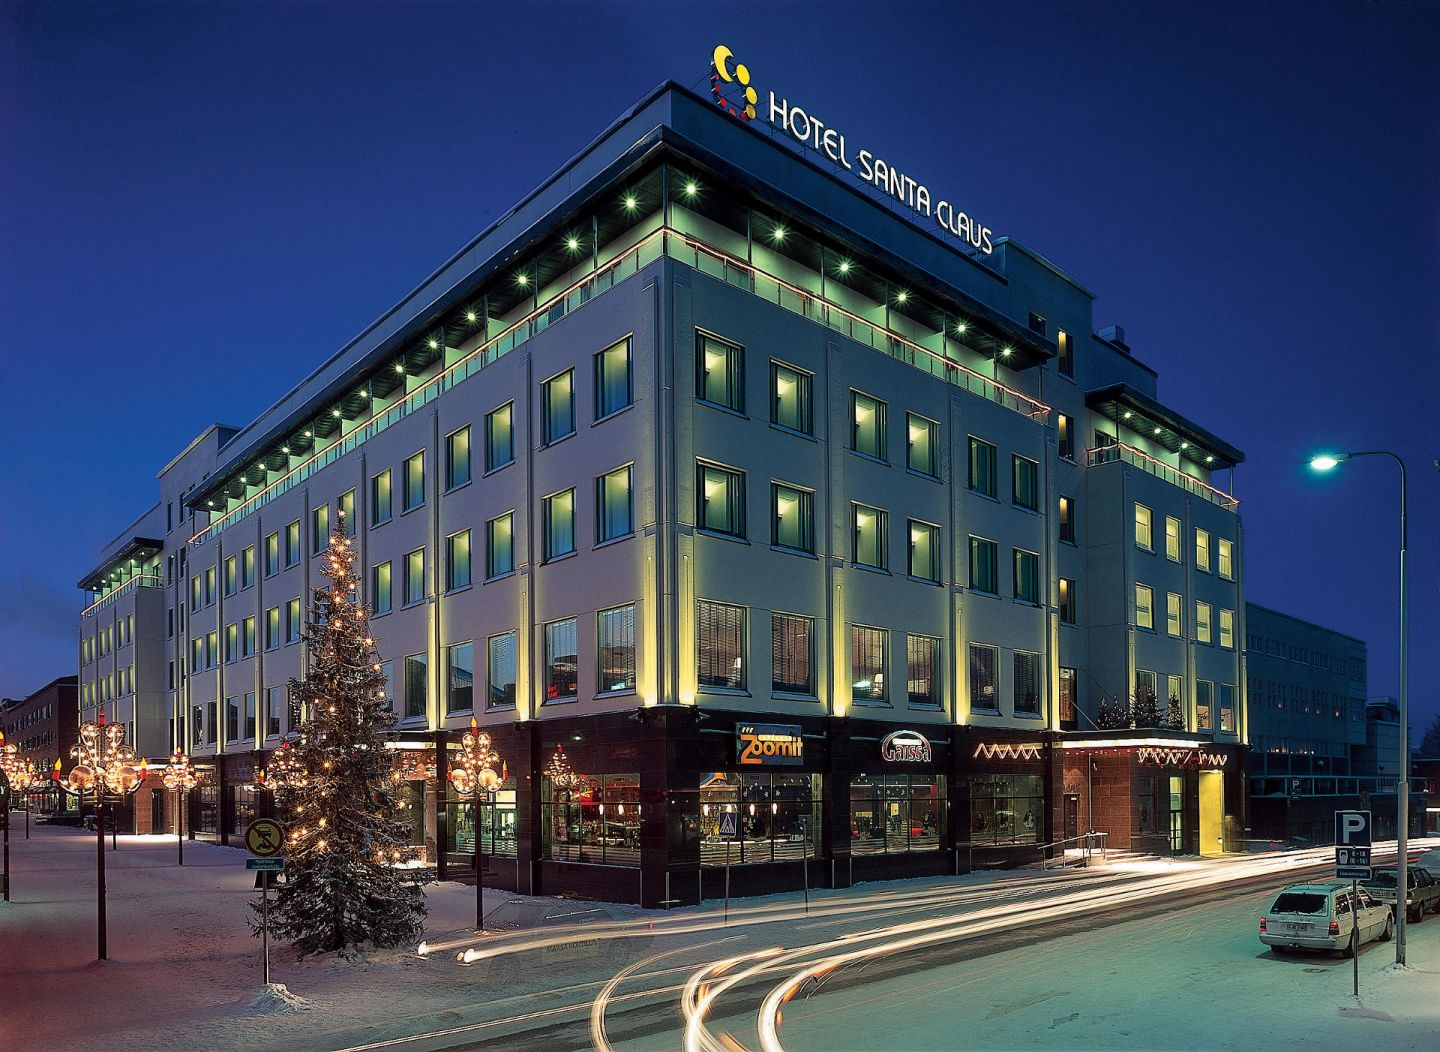 Hotel Santa Claus, convenient accommodation for film productions in downtown Rovaniemi